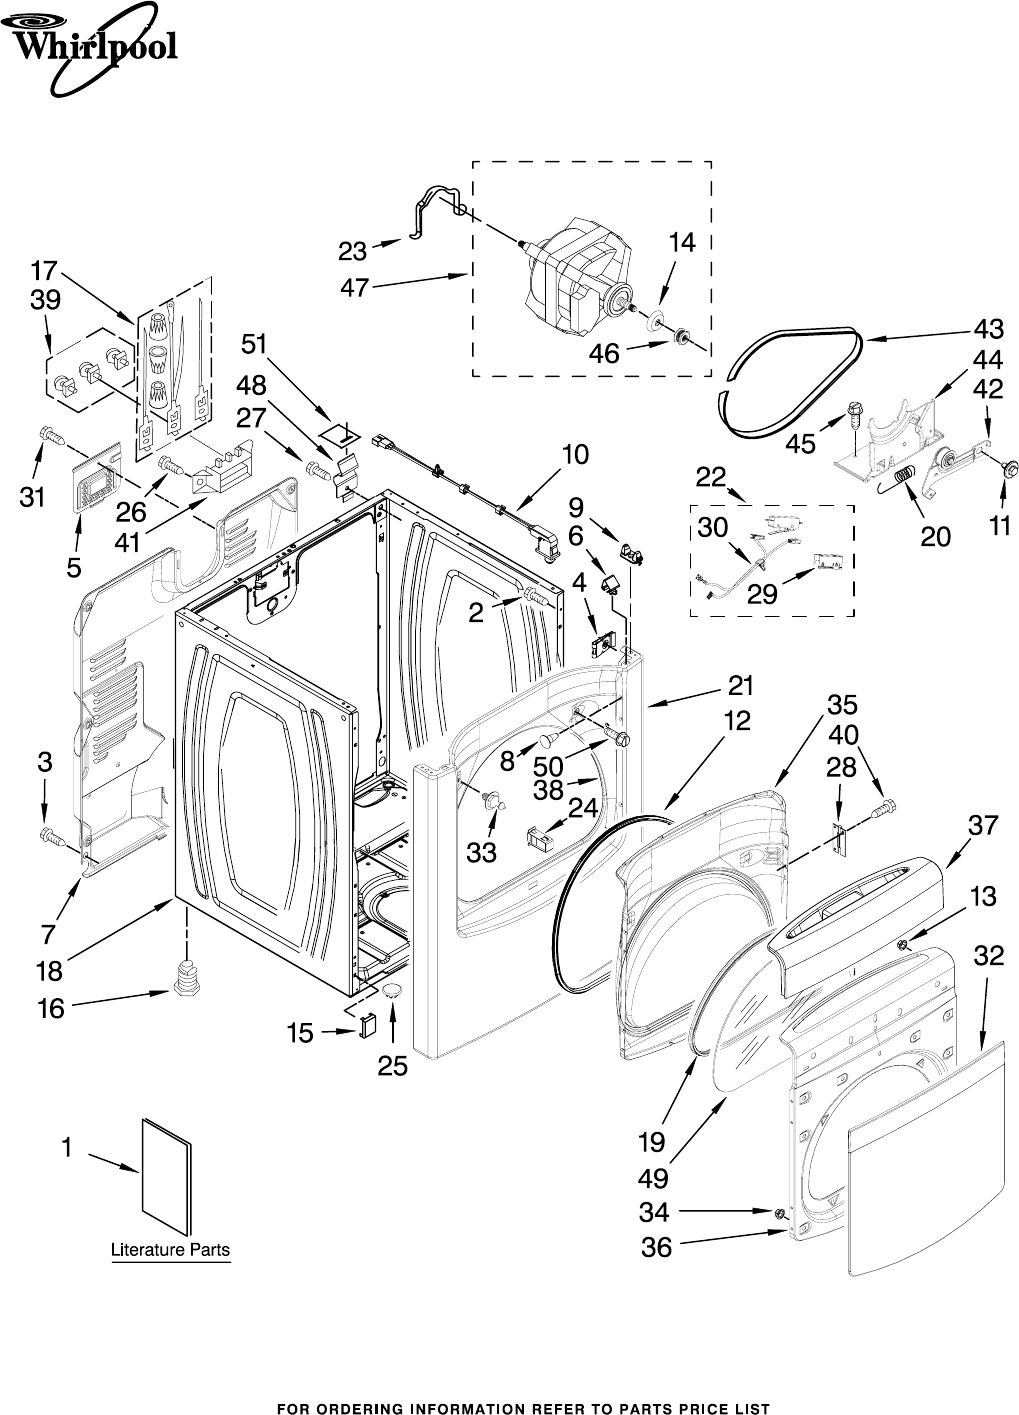 9f8b3b67 f132 6274 7d7f 7bcafbfb6226 bg1 whirlpool clothes dryer wed6400sw1 user guide manualsonline com WED6200SW1 at alyssarenee.co